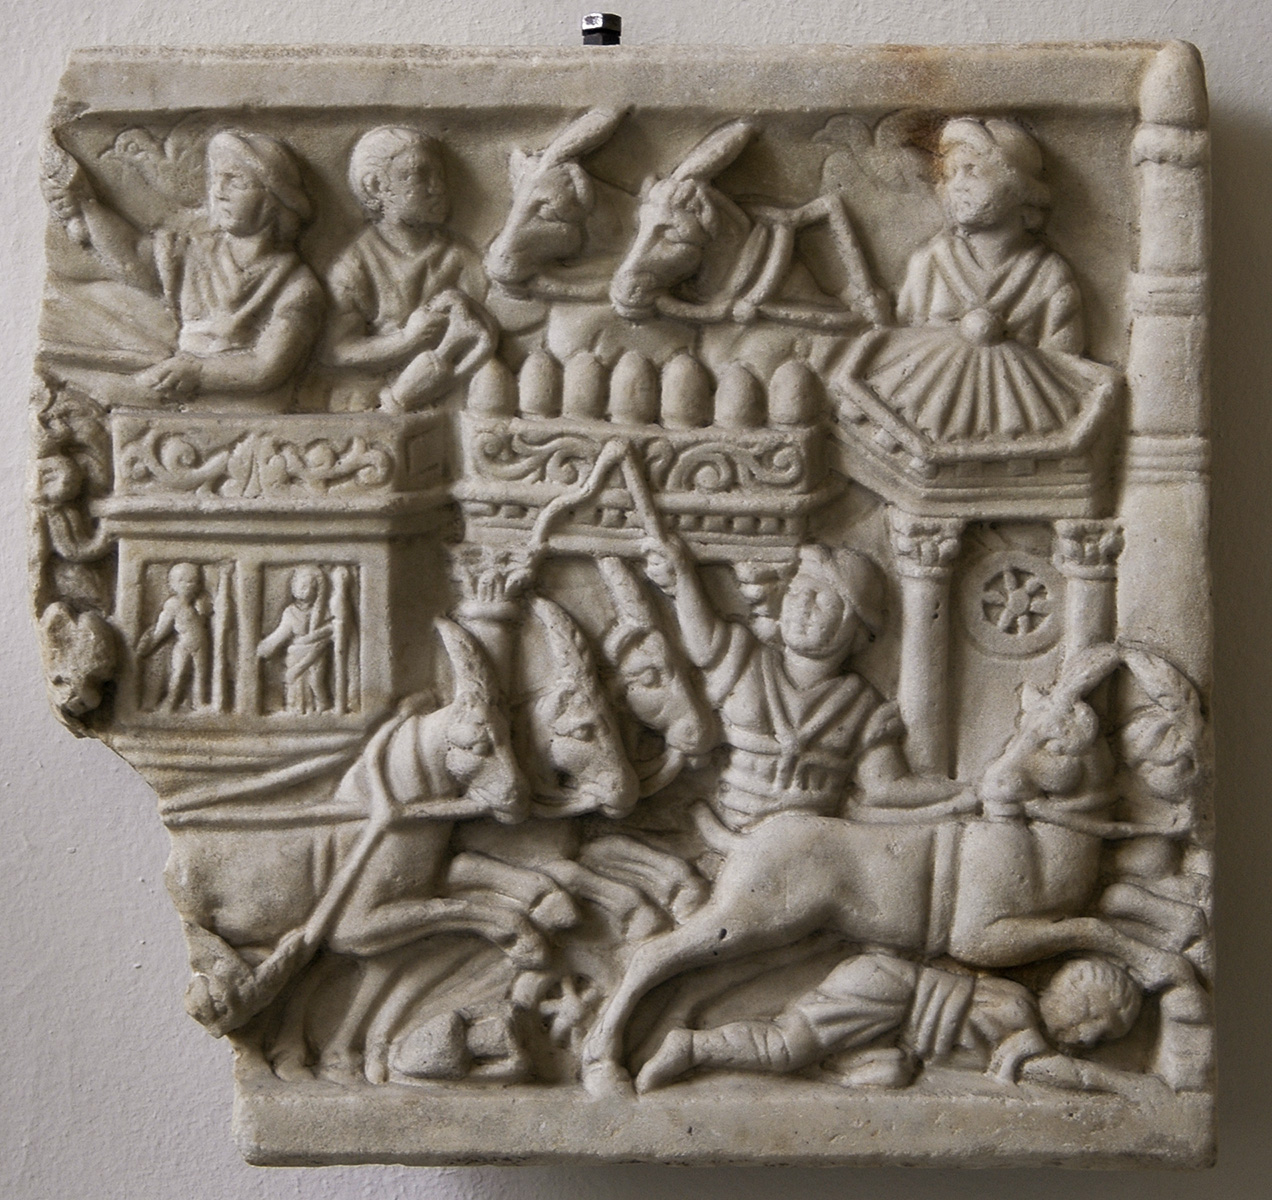 Chariot racing in the Circus. Fragment of the frontal side of sarcophagus? Marble. Ca. 300 CE. Inv. No. Sk 968. Berlin, State Museums, Pergamon Museum